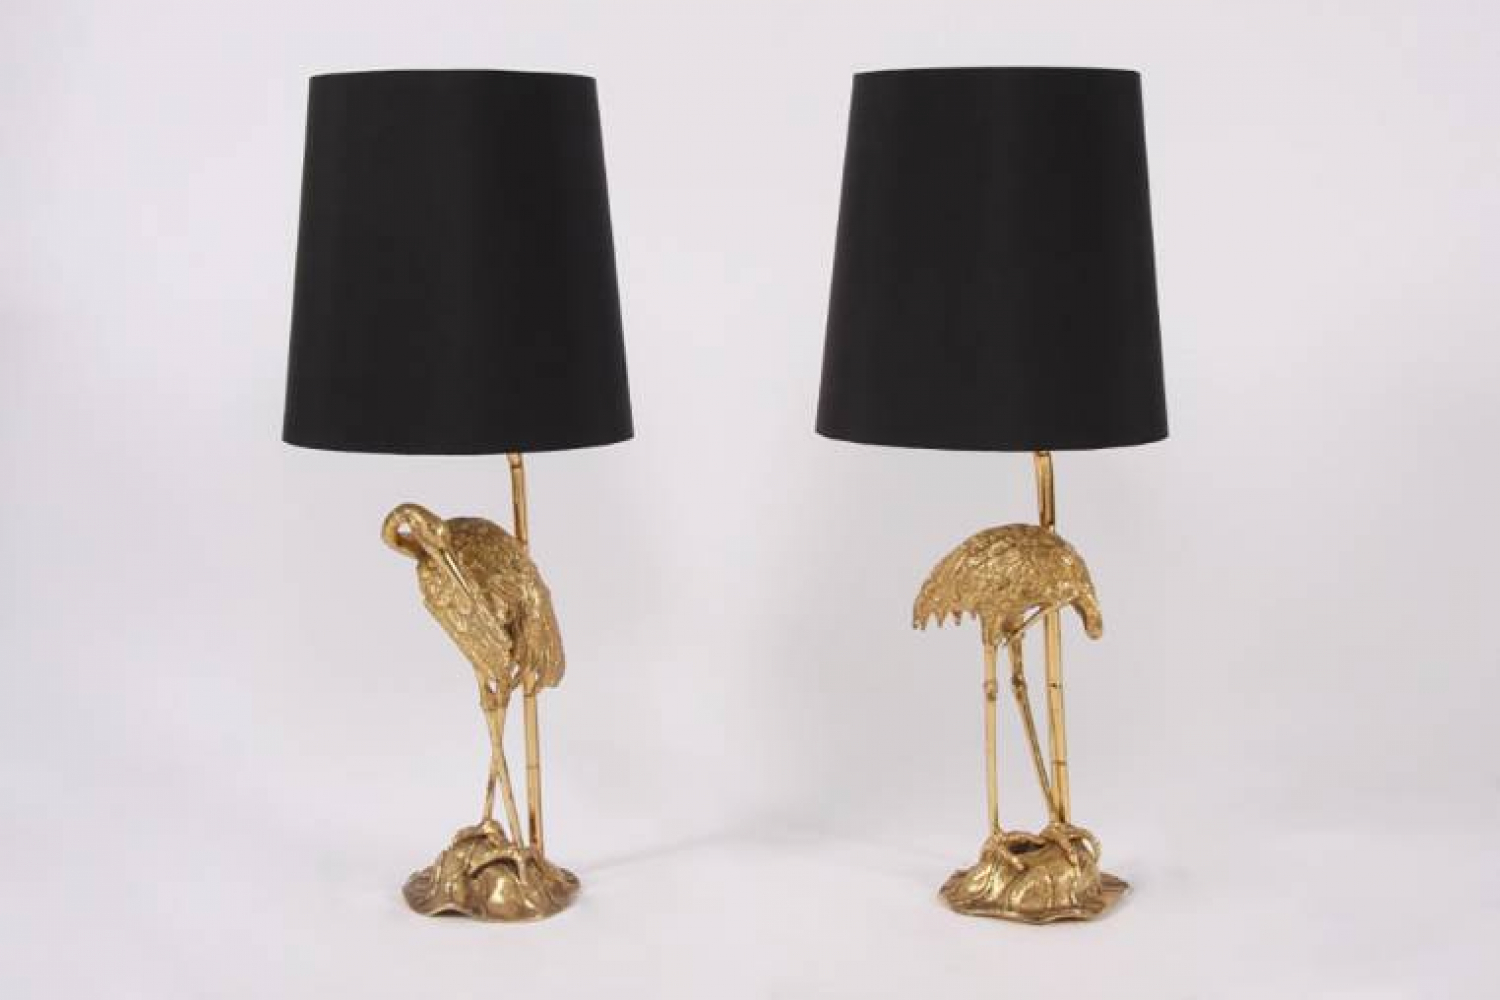 Pair of Stork Table Lamps